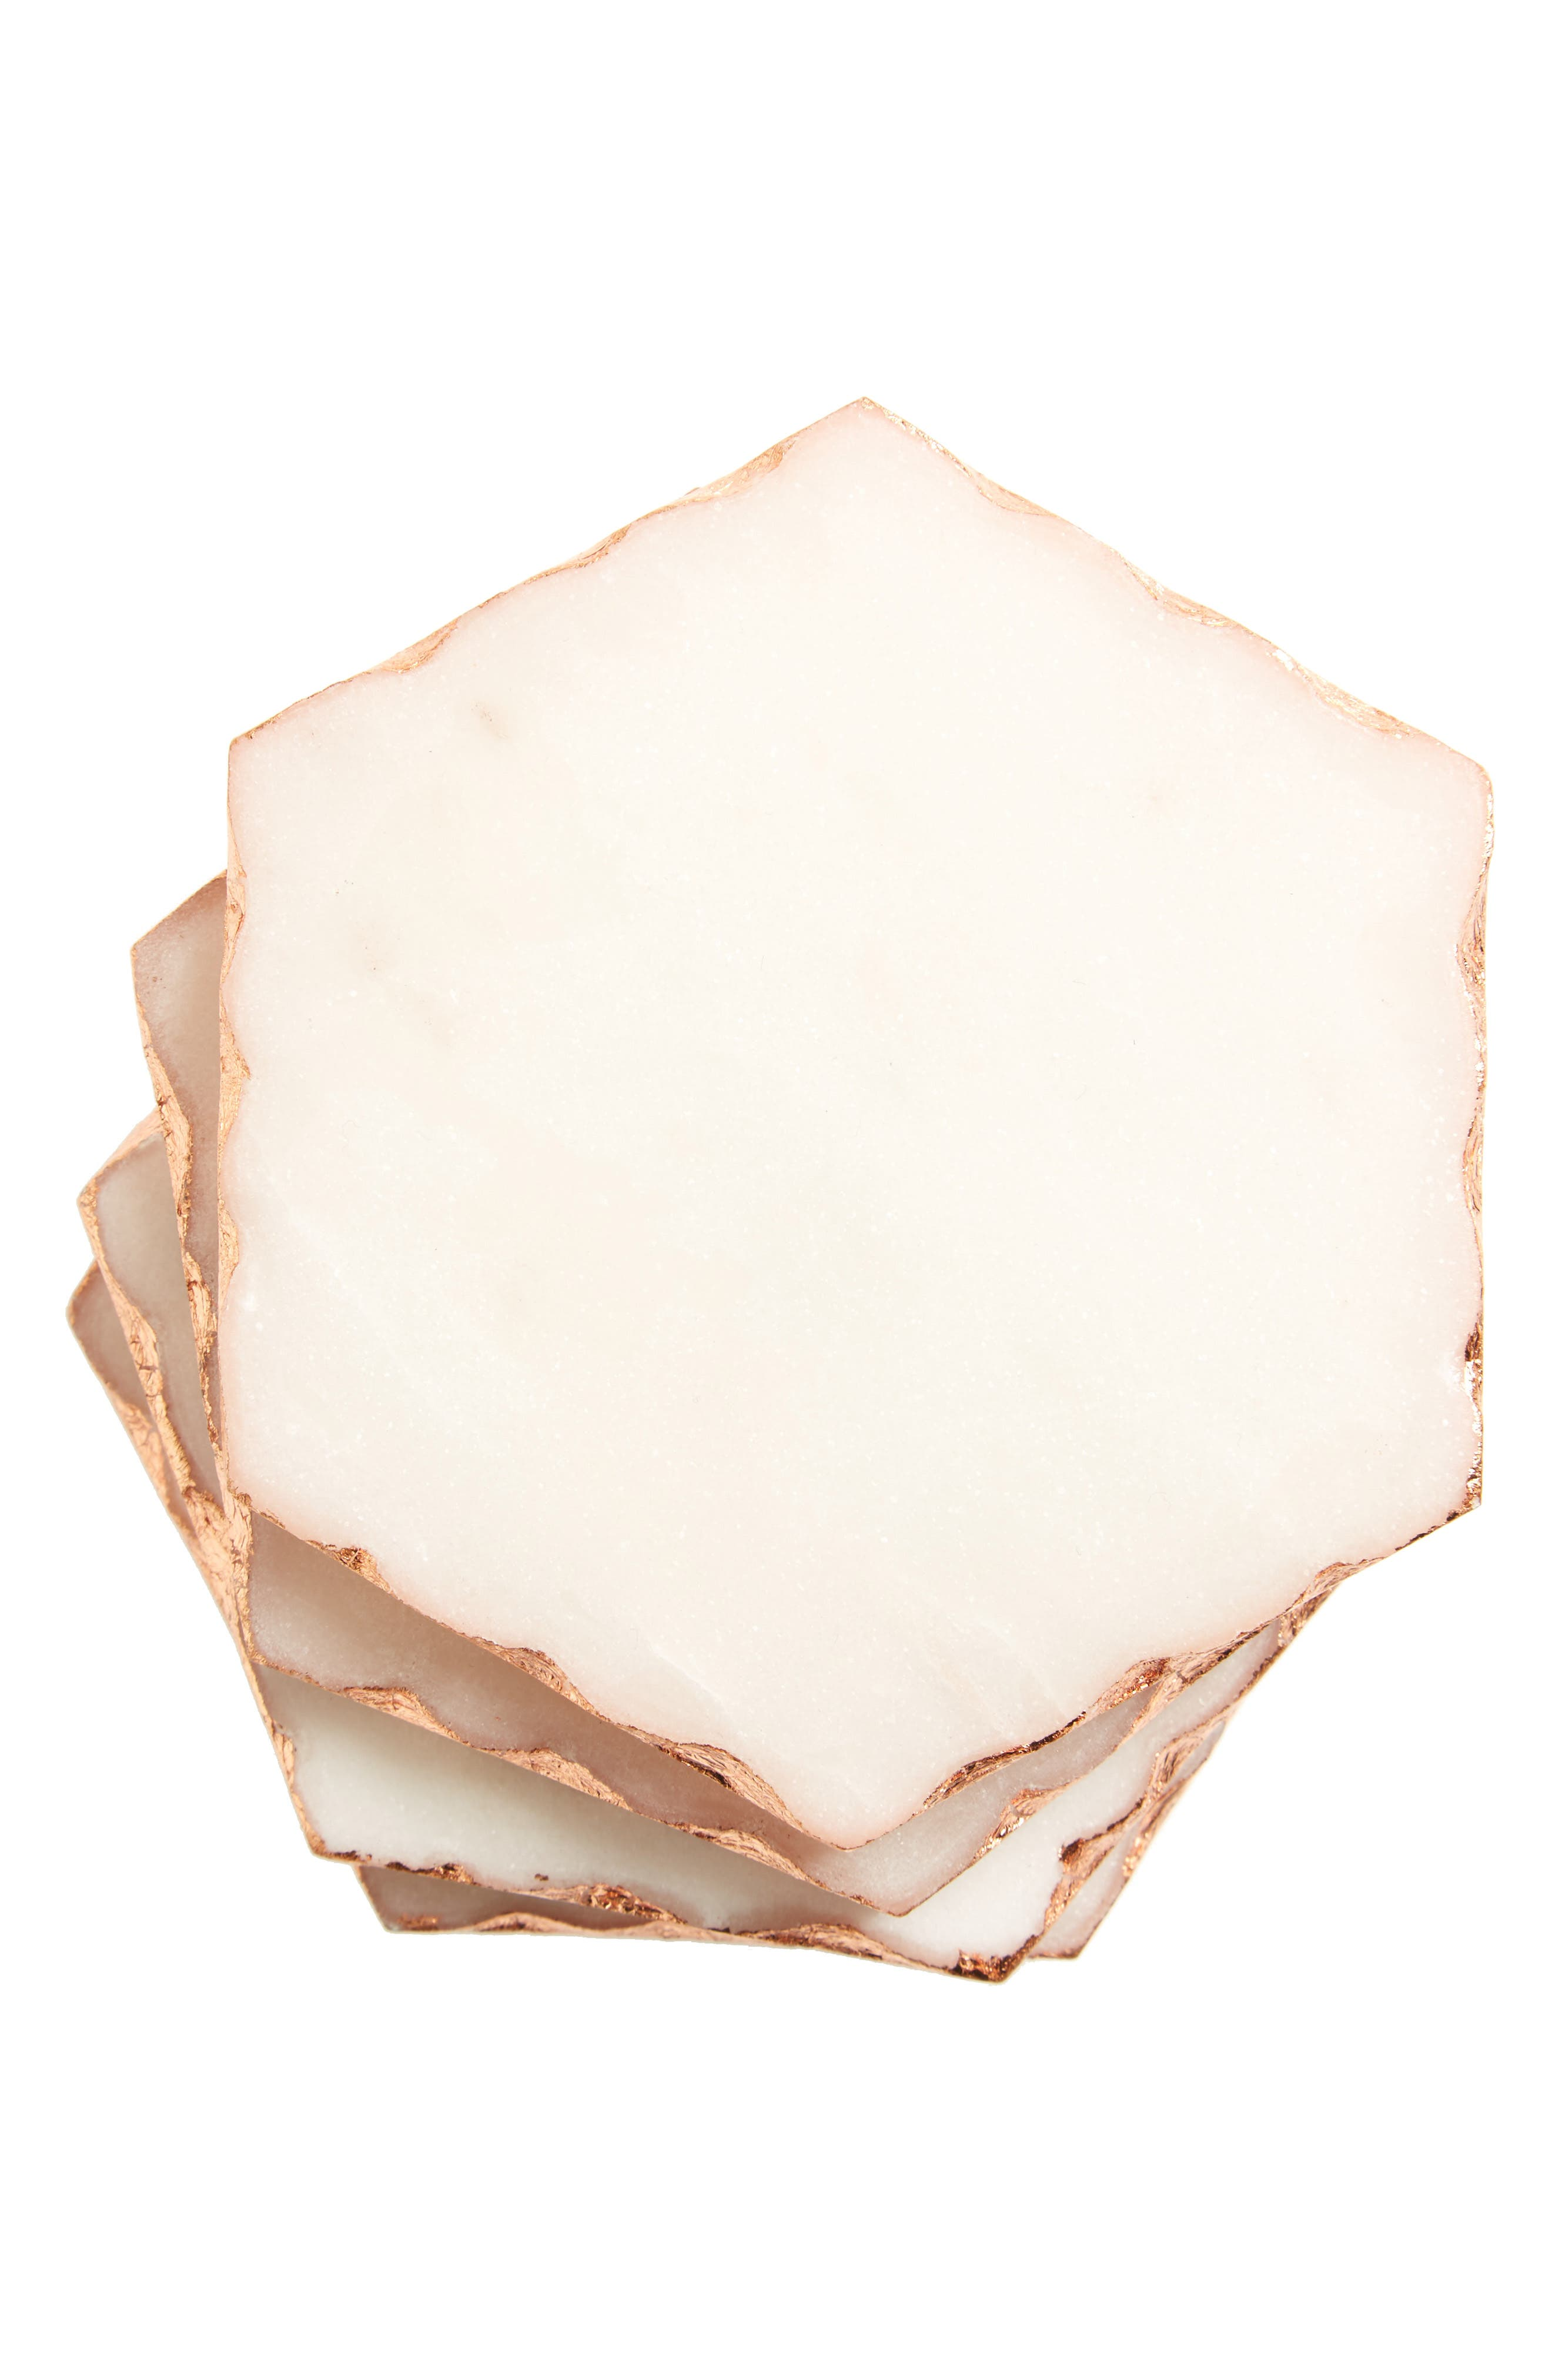 Nordstrom at Home Hexagon Set of 4 Marble Coasters